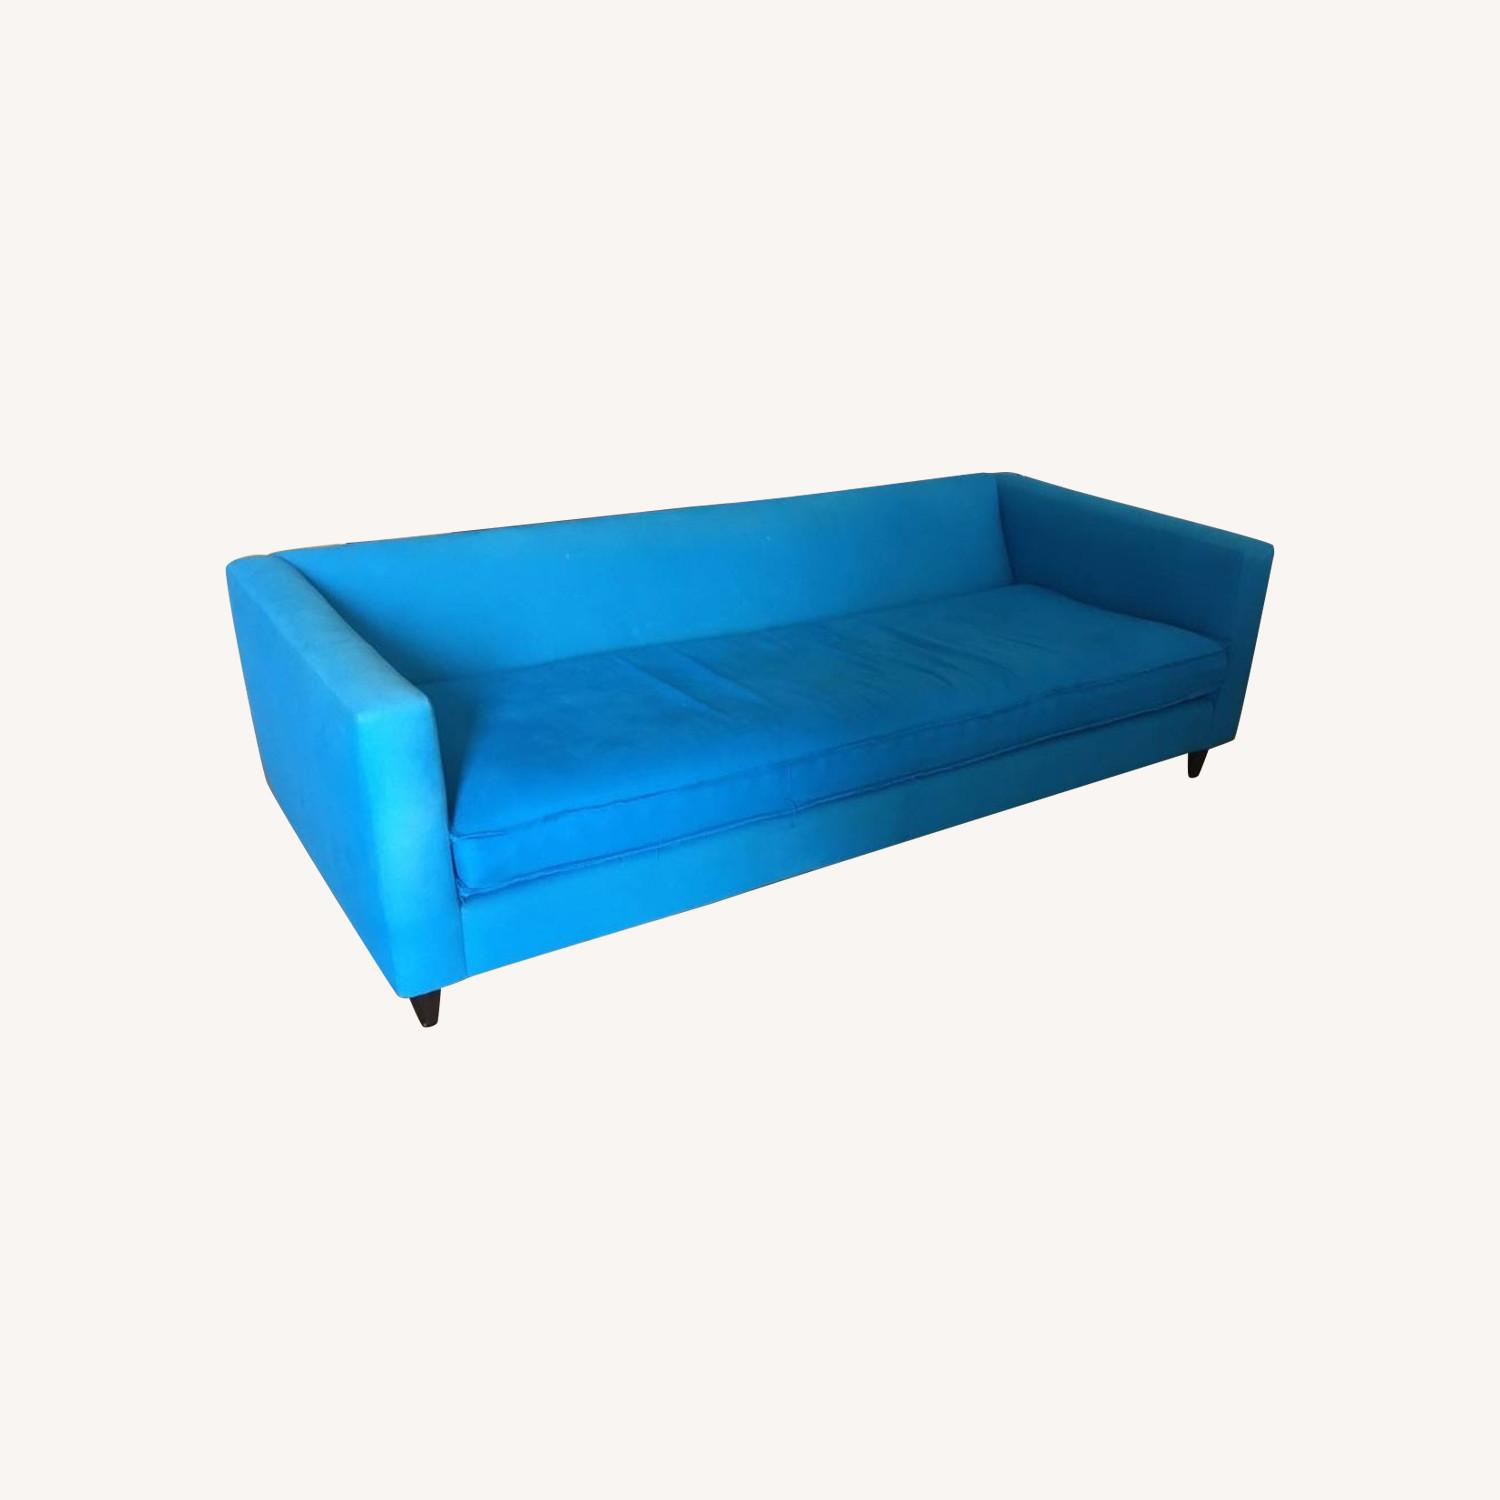 CB2 Movie Sofa Dorien Pool - image-0